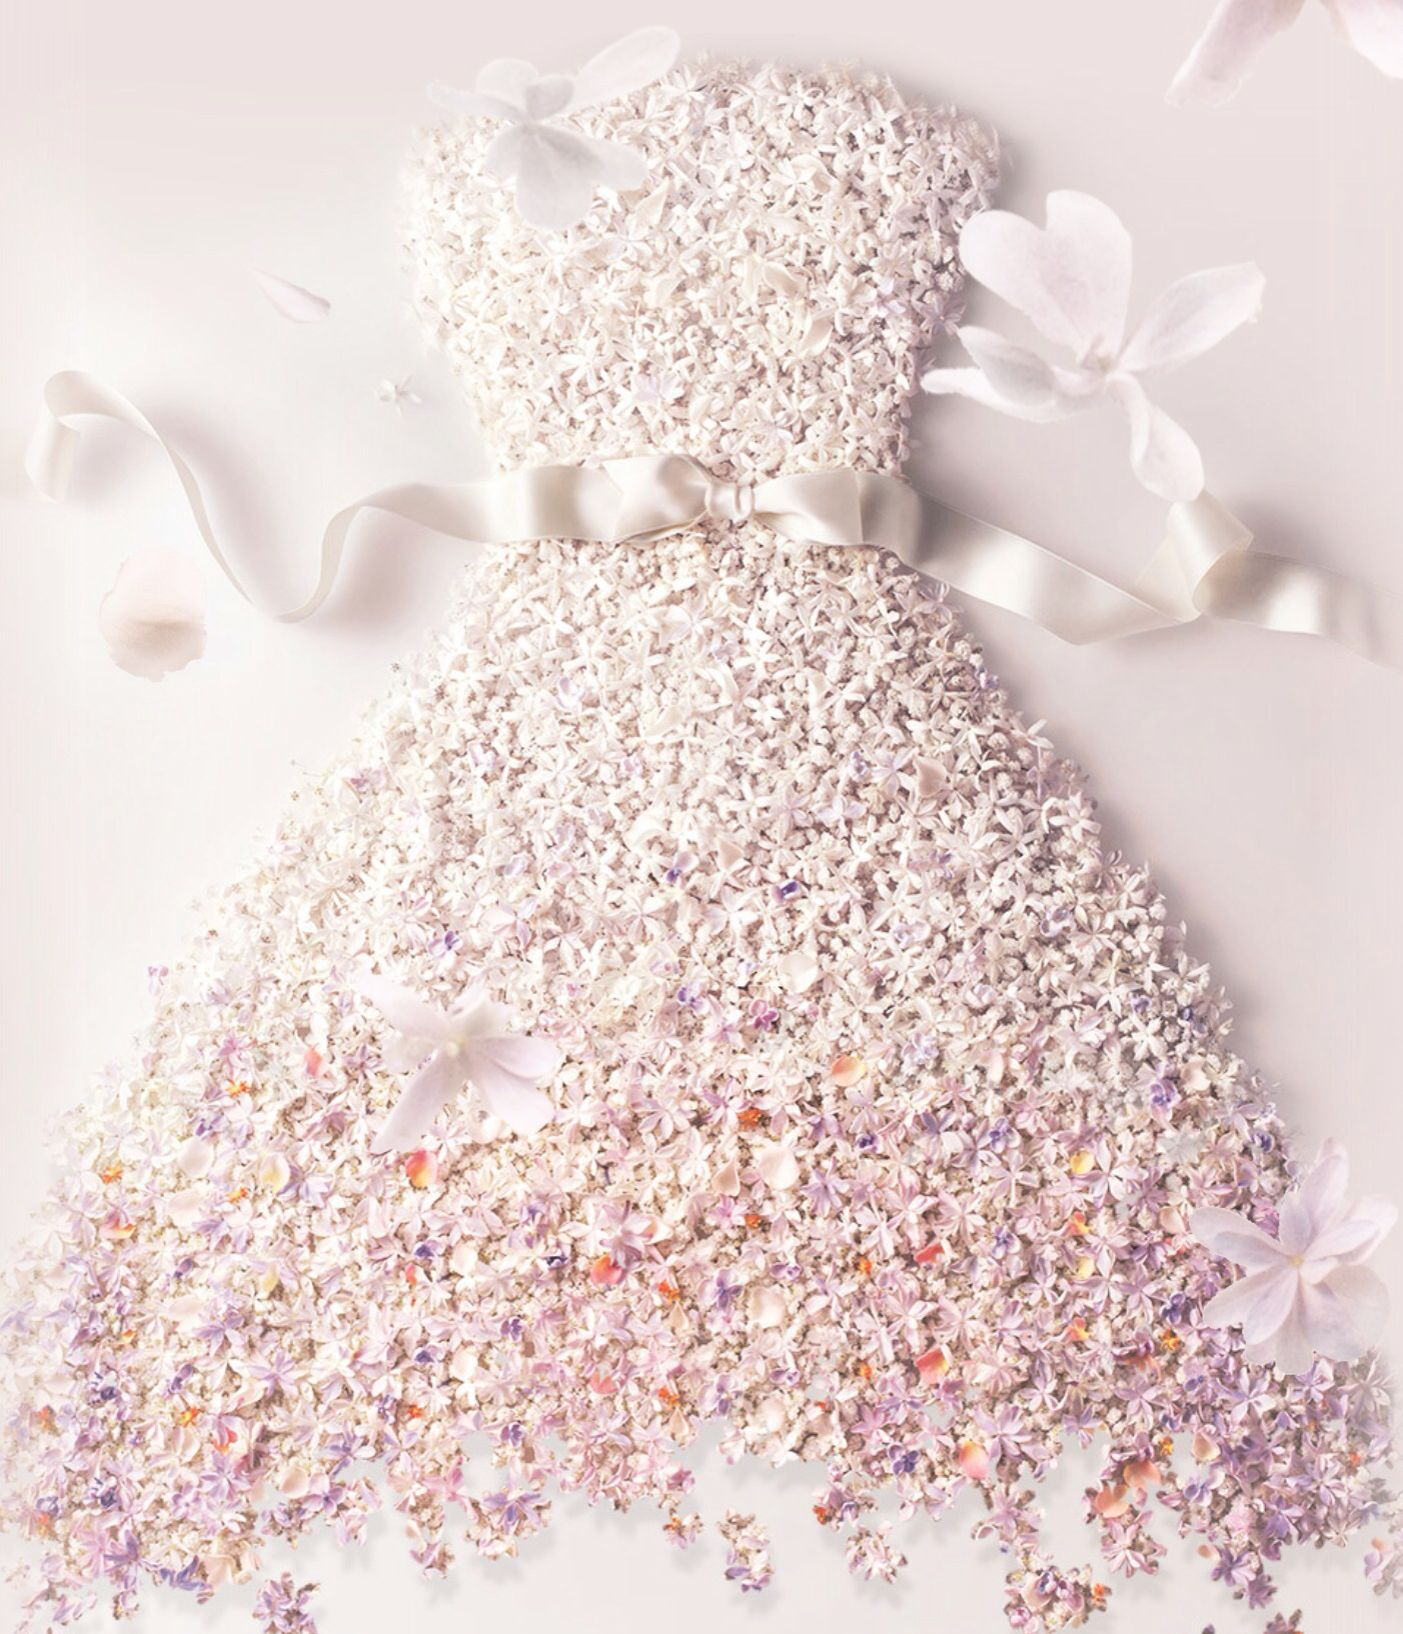 #miss Dior #blooming bouquet digital campaign #raff simons #dress #interpreted in flowers.